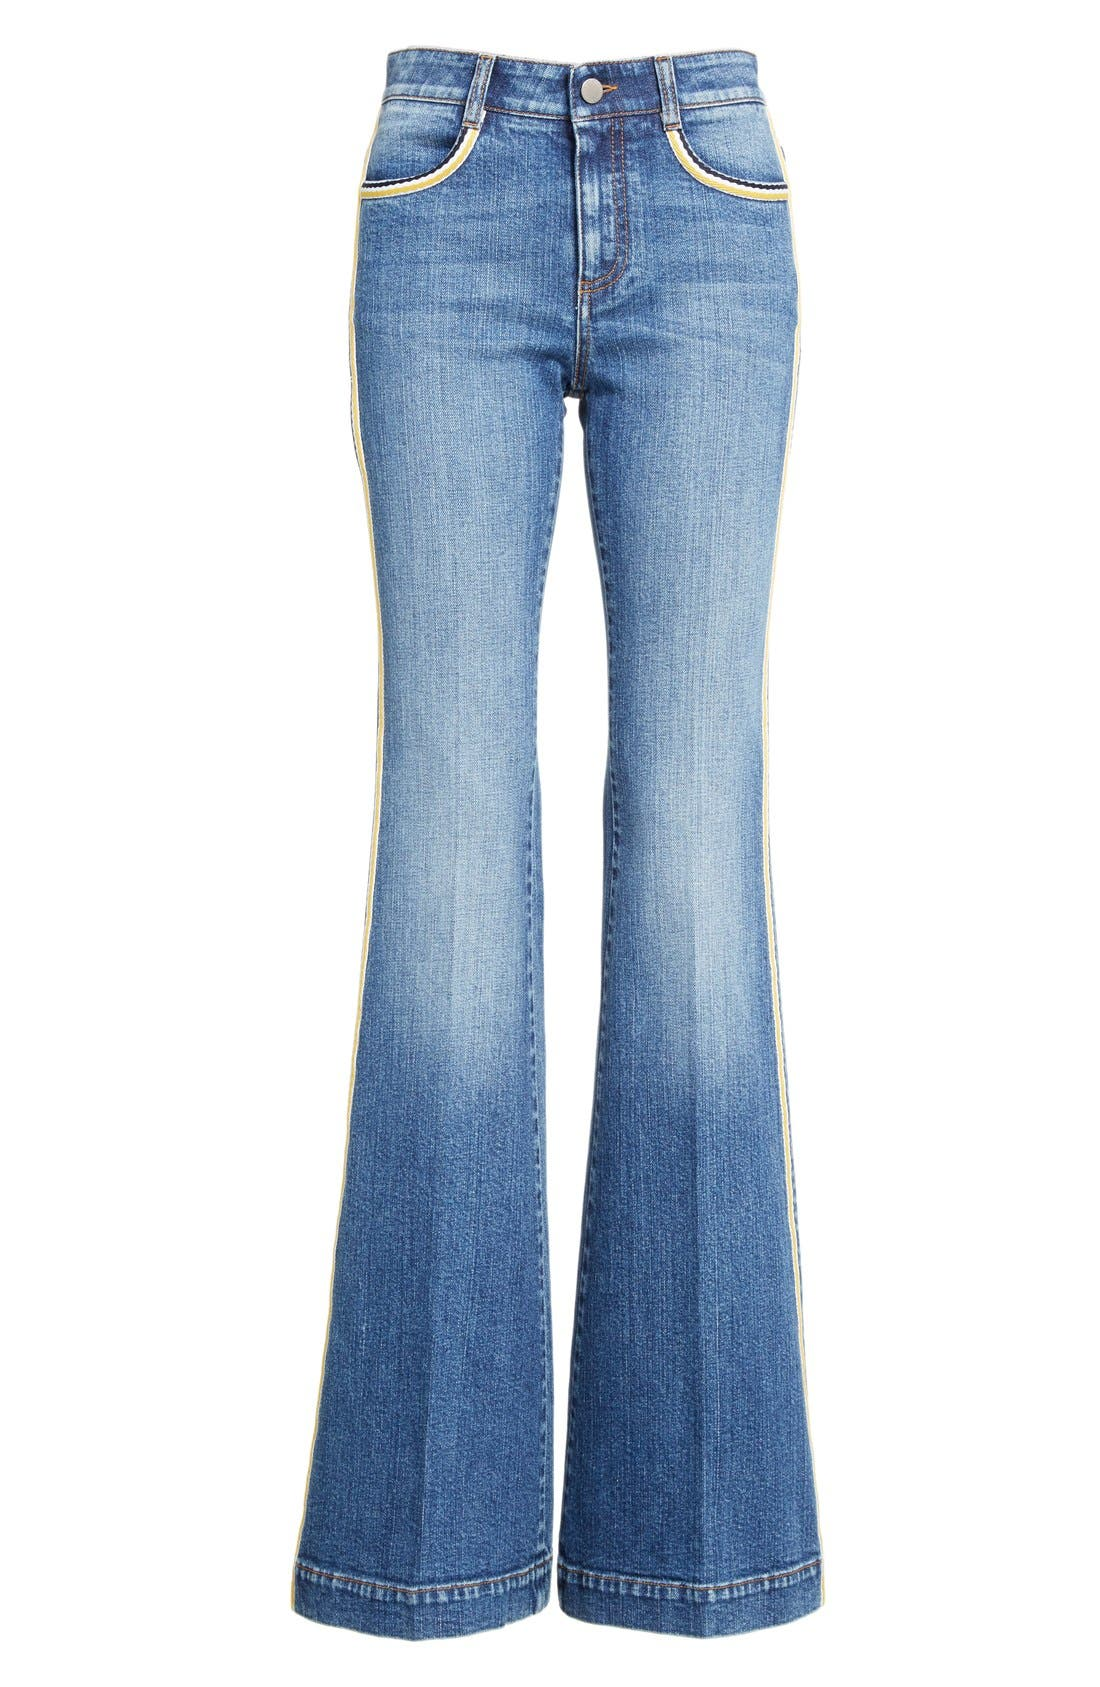 Alternate Image 4  - Stella McCartney '70s Flare' Jeans (Classic Blue)